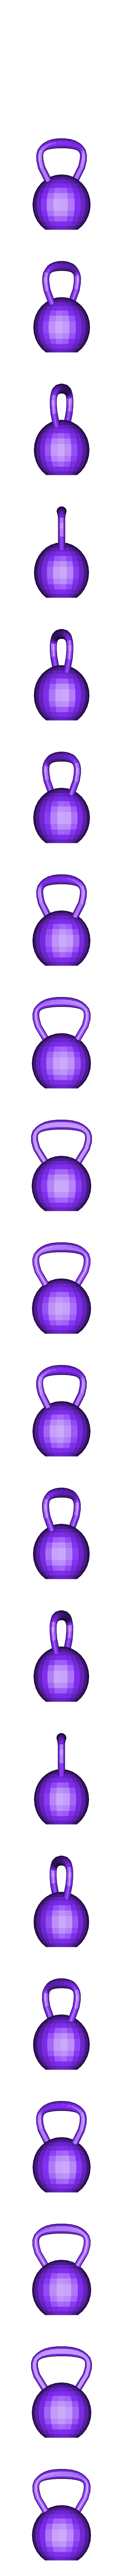 Kettlebell.obj Download free OBJ file Kettlebell • 3D printing template, Colorful3D